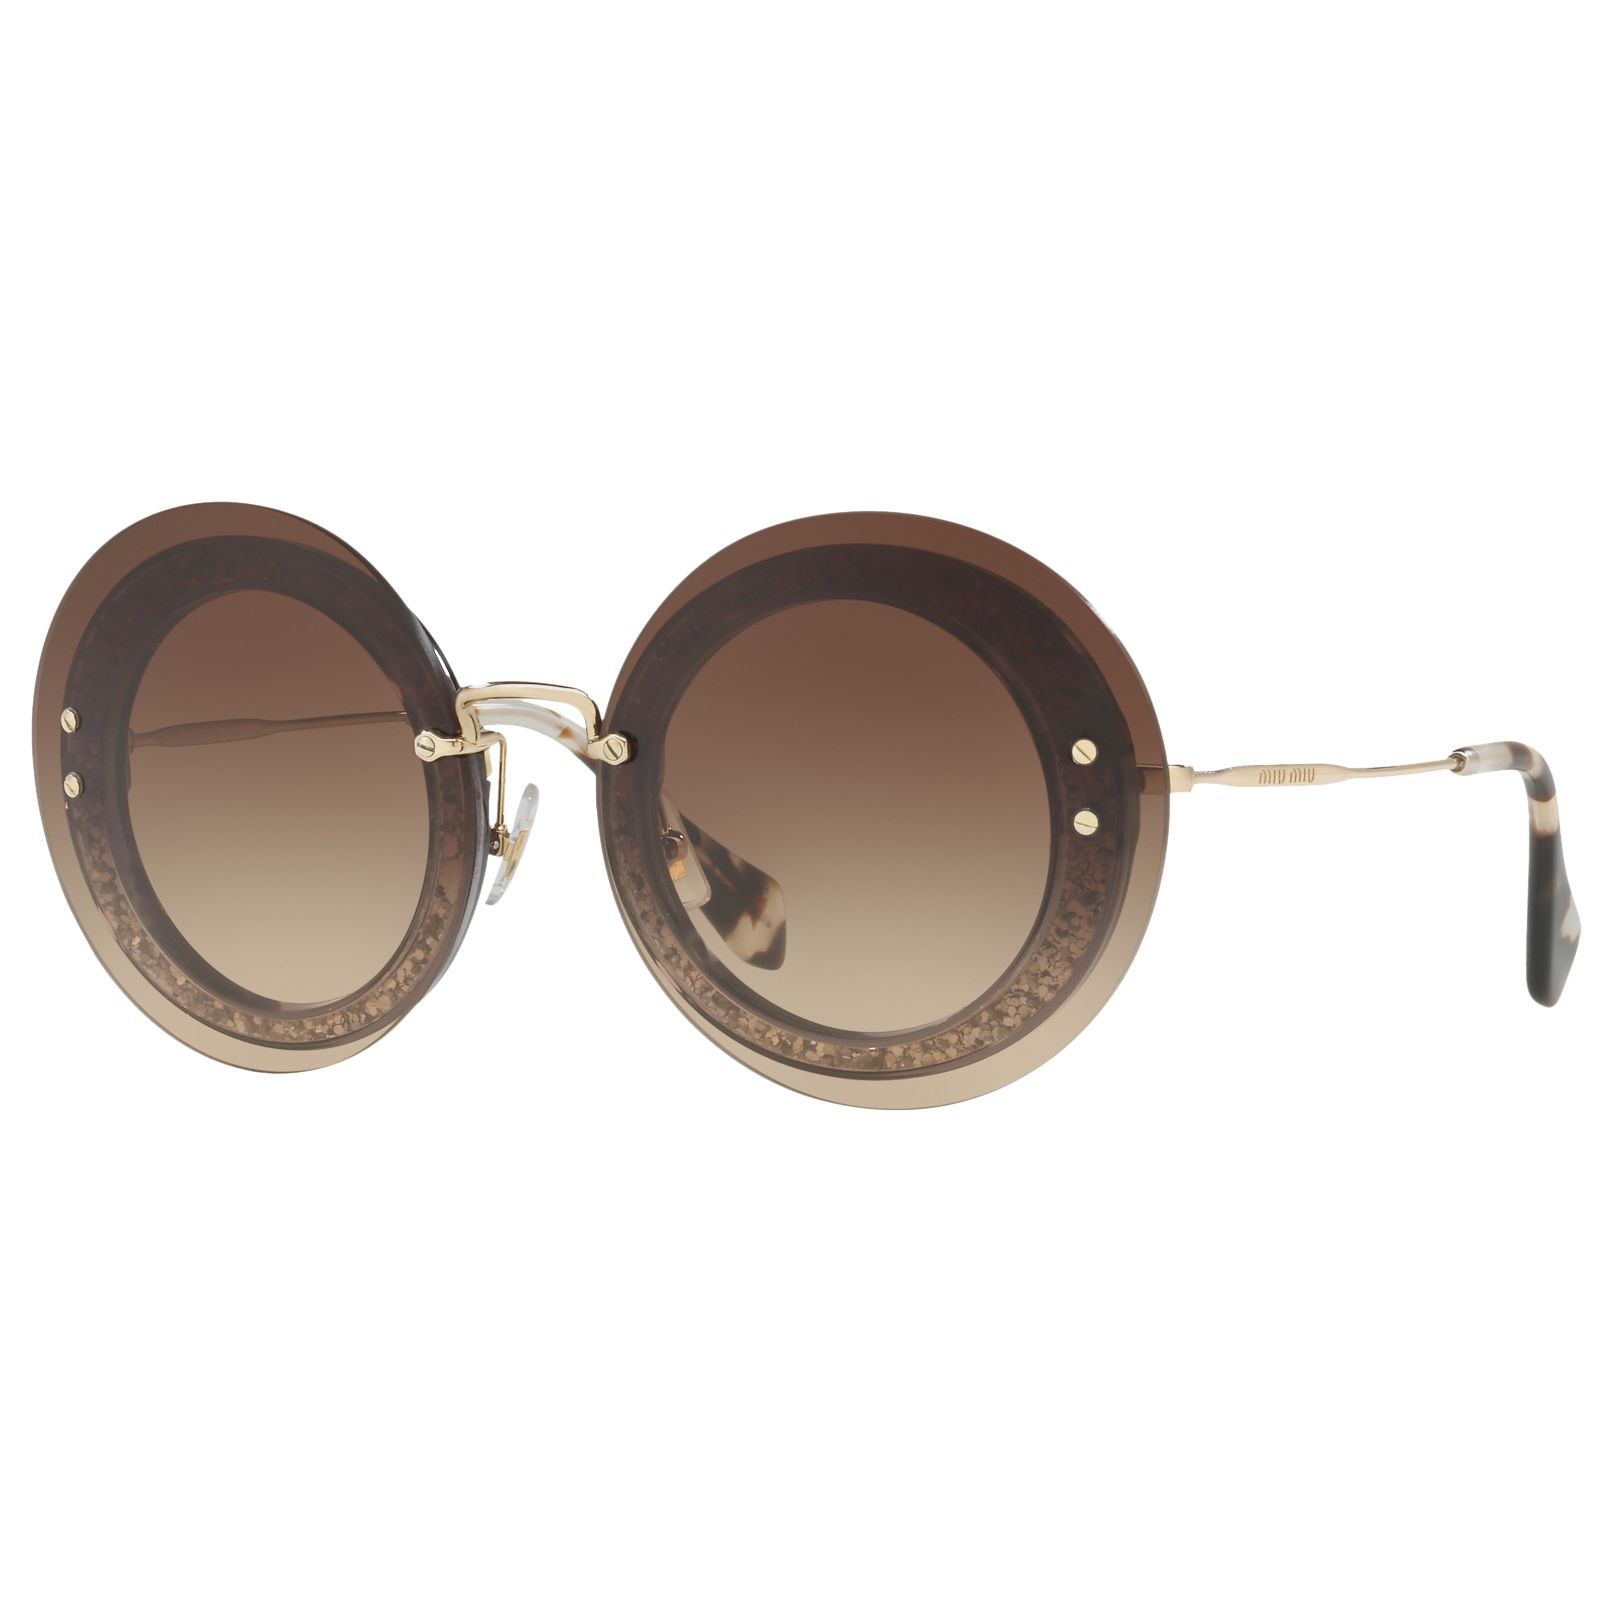 Miu Miu Miu Miu MU 10RS Round Sunglasses, Havana/Brown Gradient